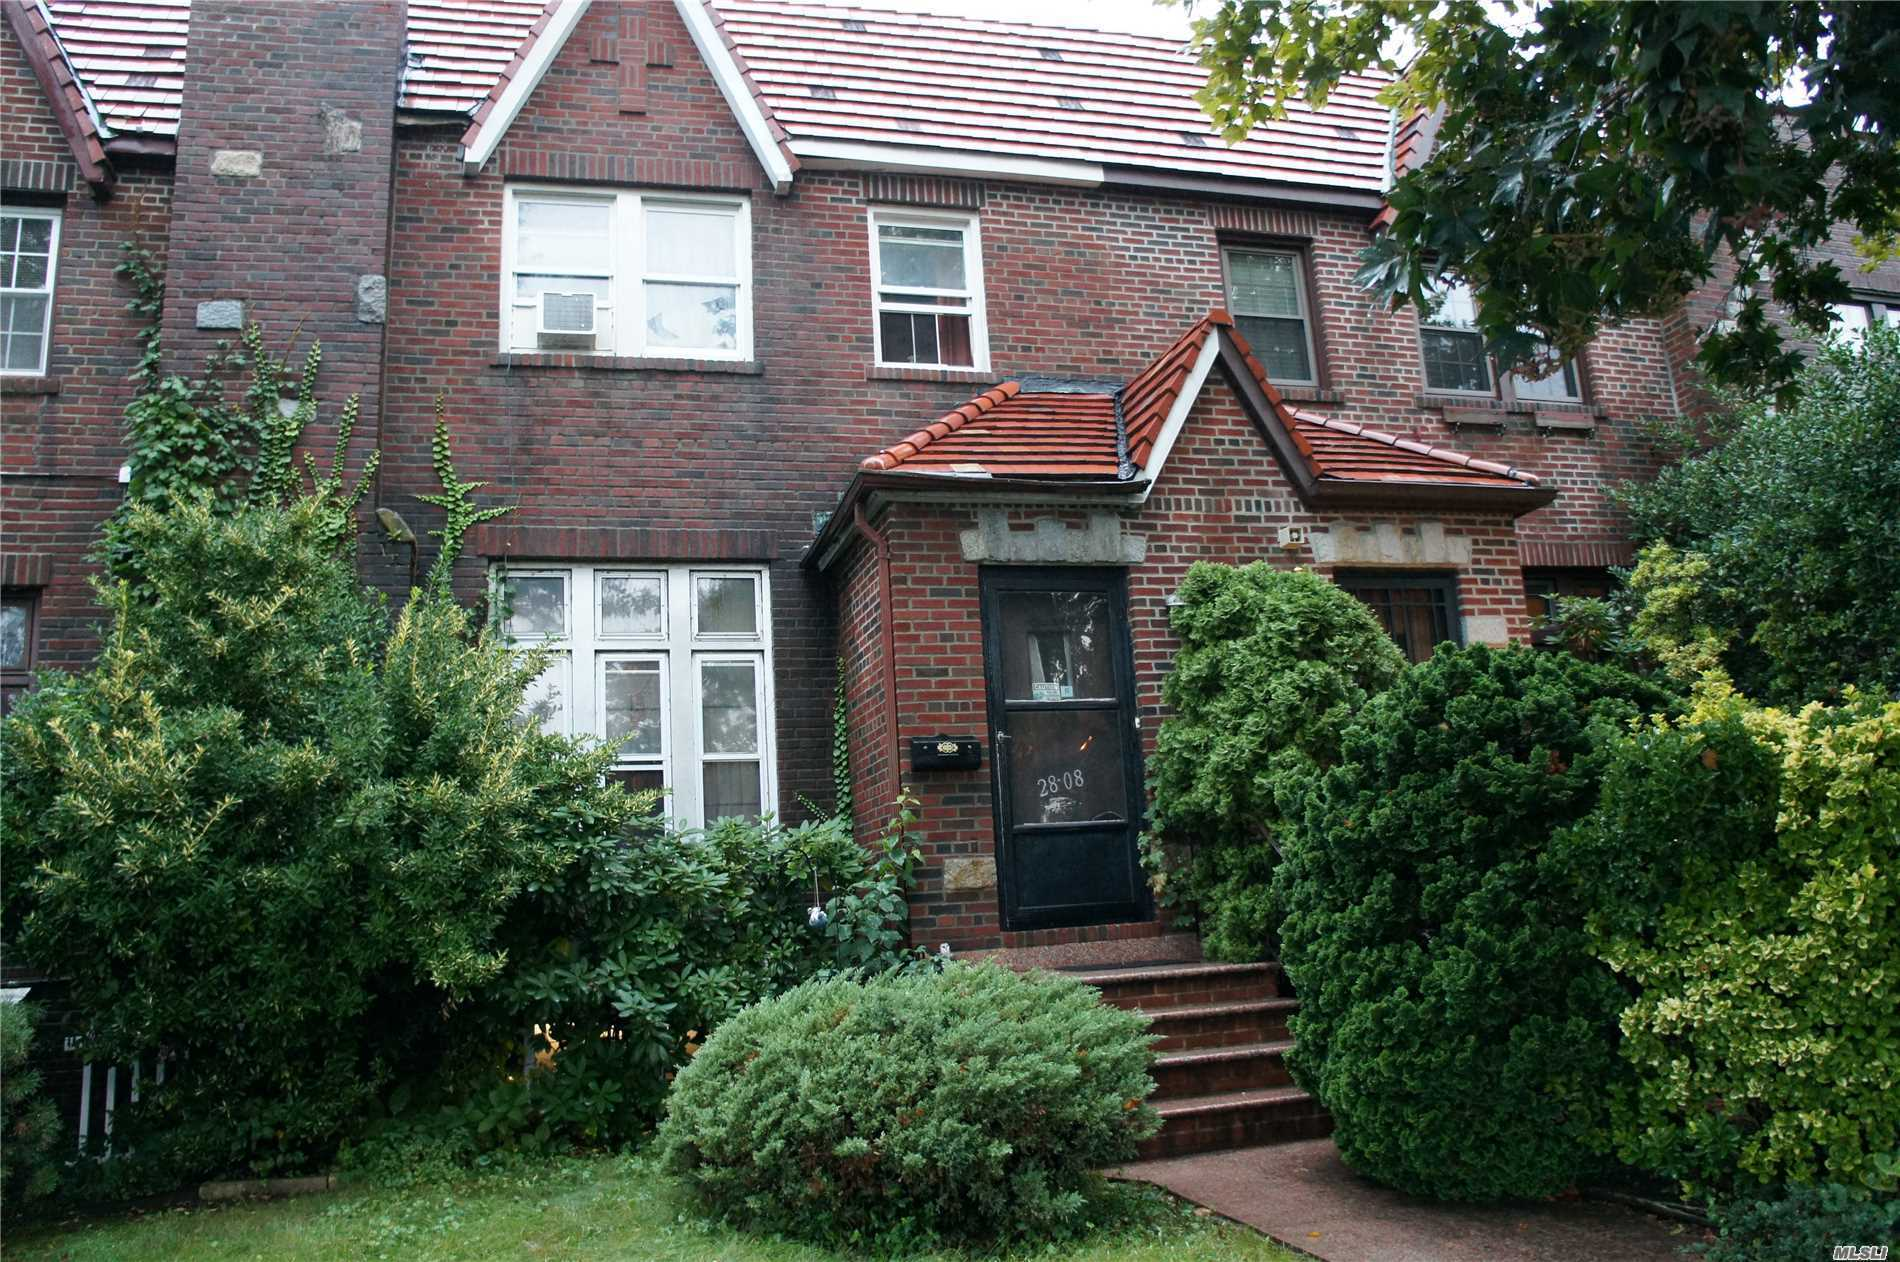 Single Family Tudor Located In The Heart Of Flushing, Close To Transportation. House Has Tons Of Potential! Needs Renovations And Is Being Sold As-Is Seller Wants To Hear All Offers!